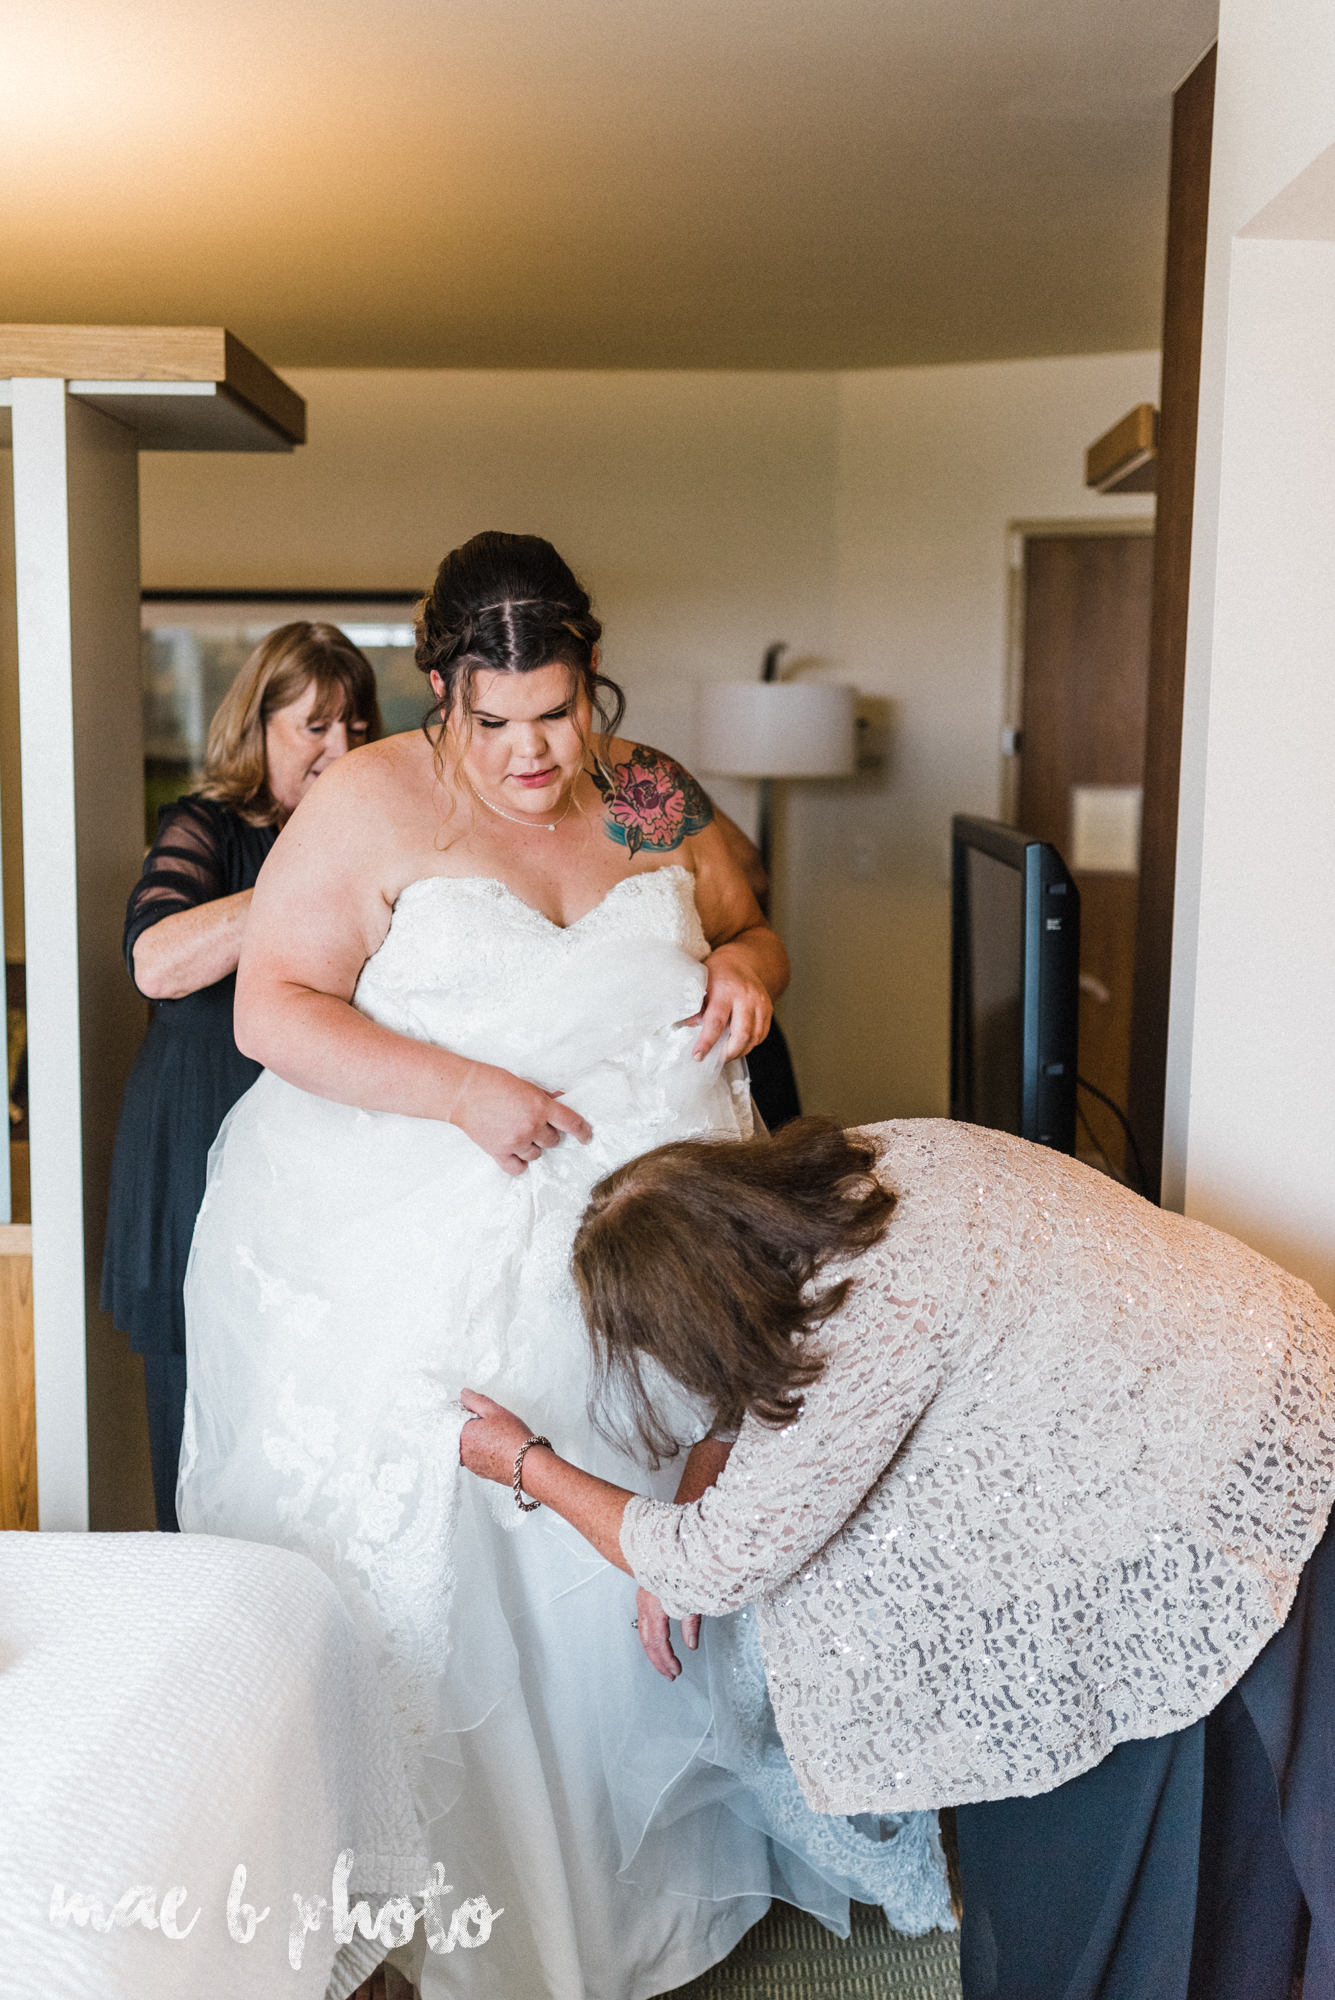 Kristina and ryan's personal vintage glam fall wedding at disalvo's station restaurant and the arnold palmer latrobe country club in latrobe, pa photographed by youngstown wedding photographer mae b photo-11.jpg